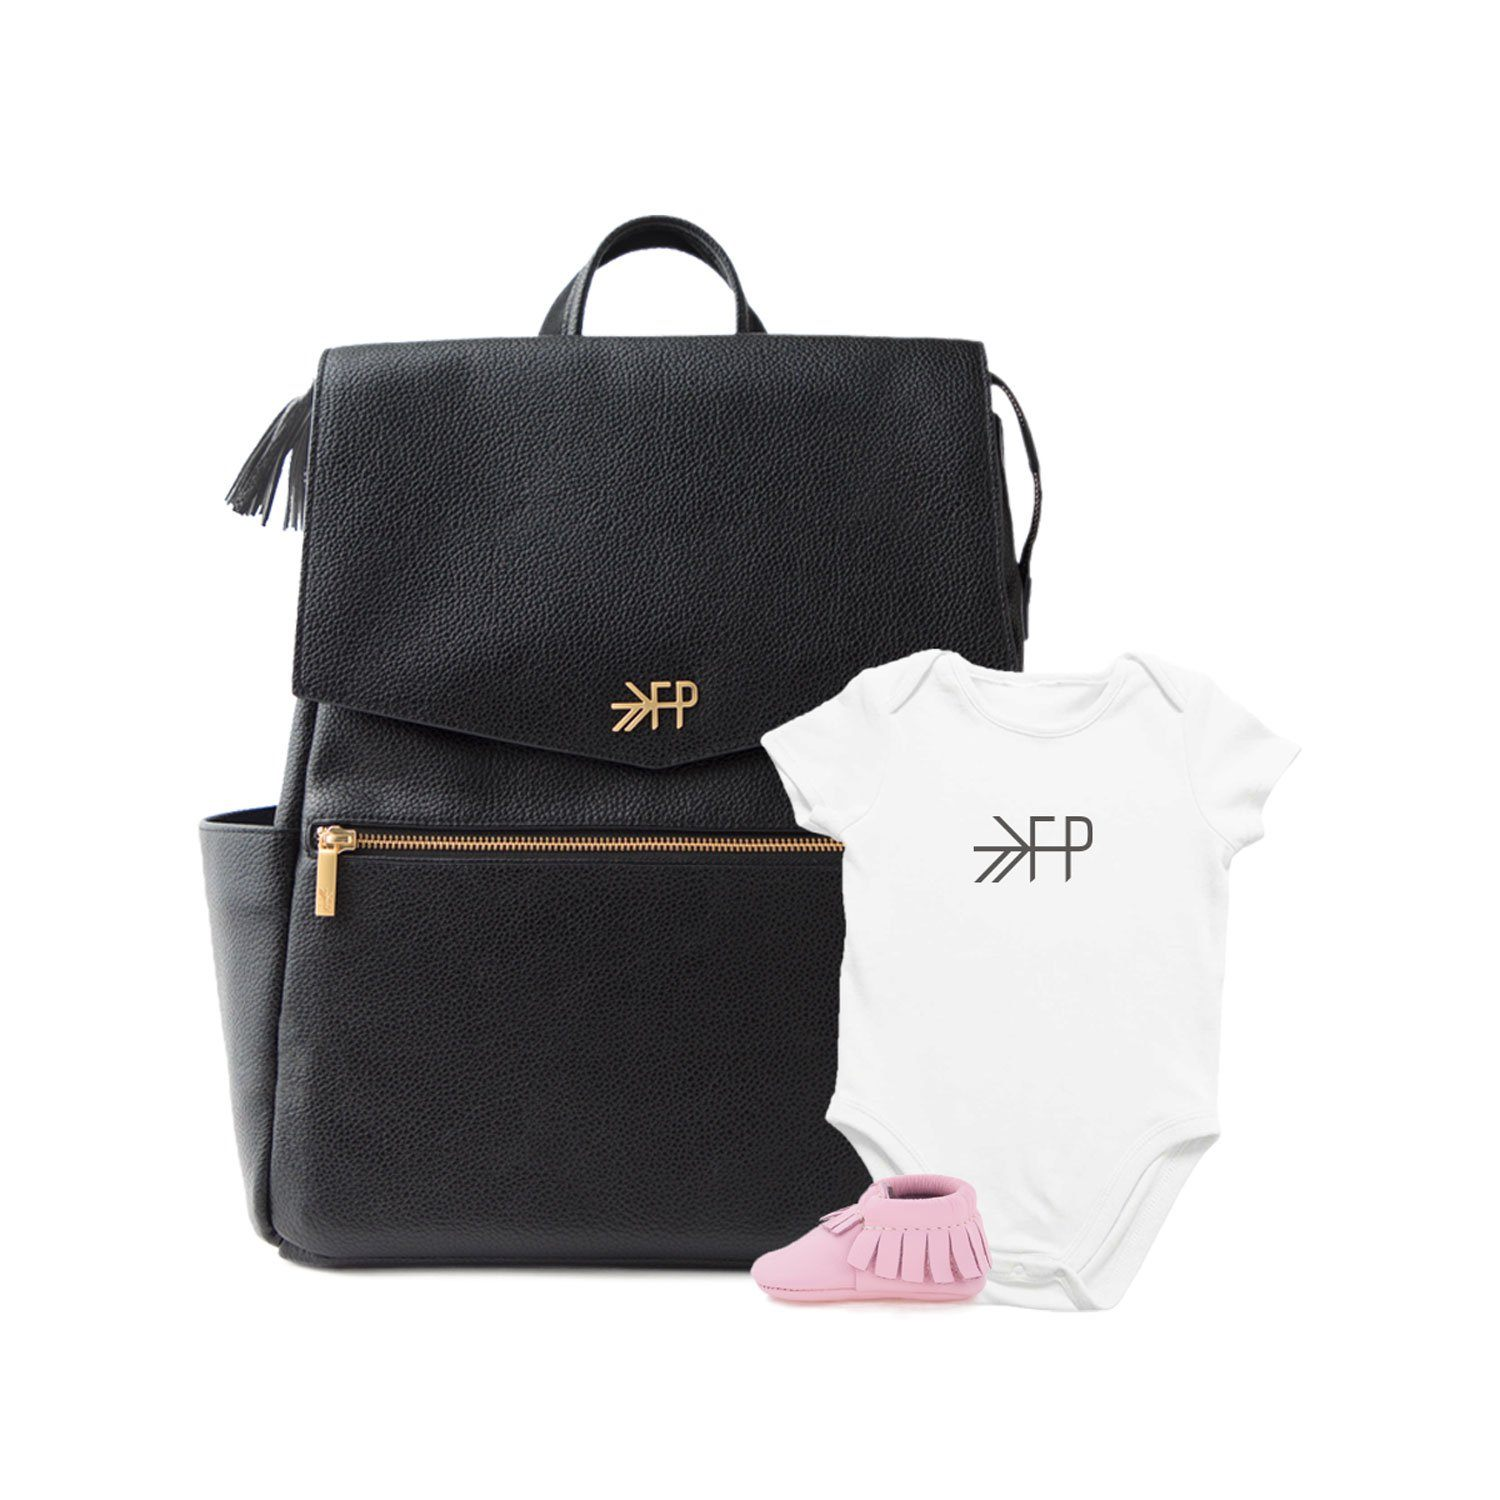 Ebony Classic + Rose Pink Set Diaper Bag Bundle Bundle